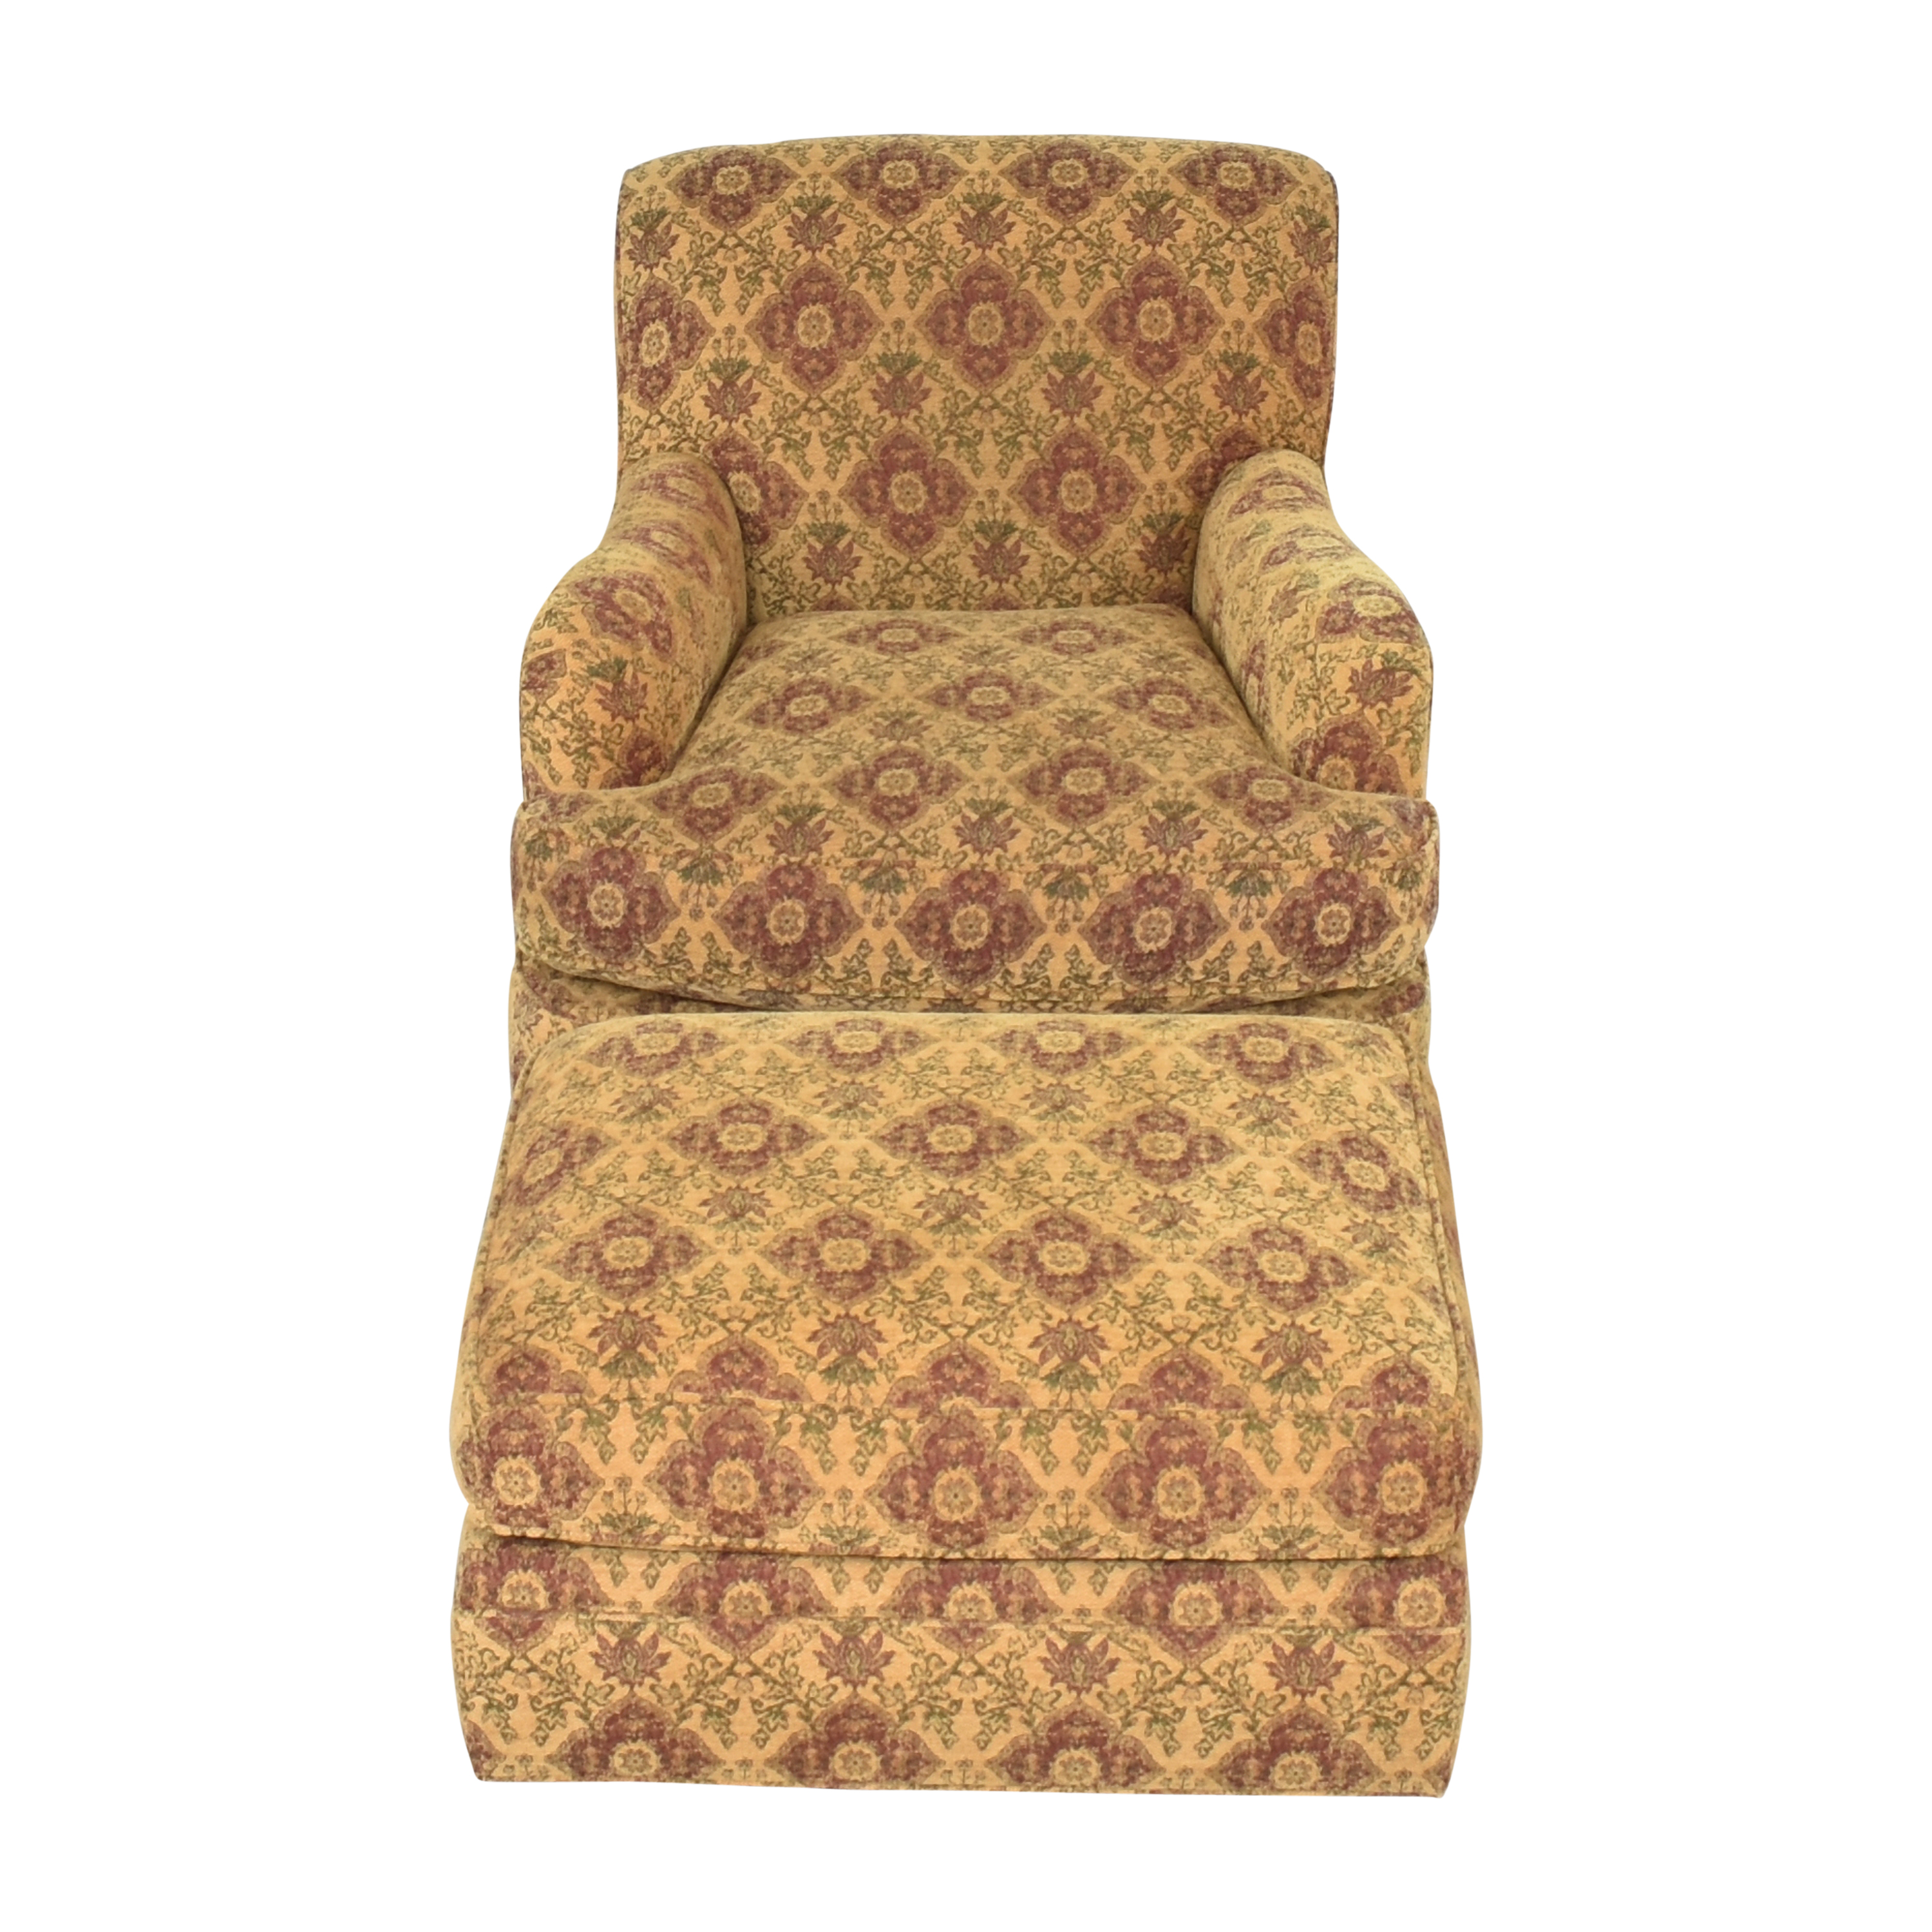 Crate & Barrel Crate & Barrel Upholstered Arm Chair with Ottoman used